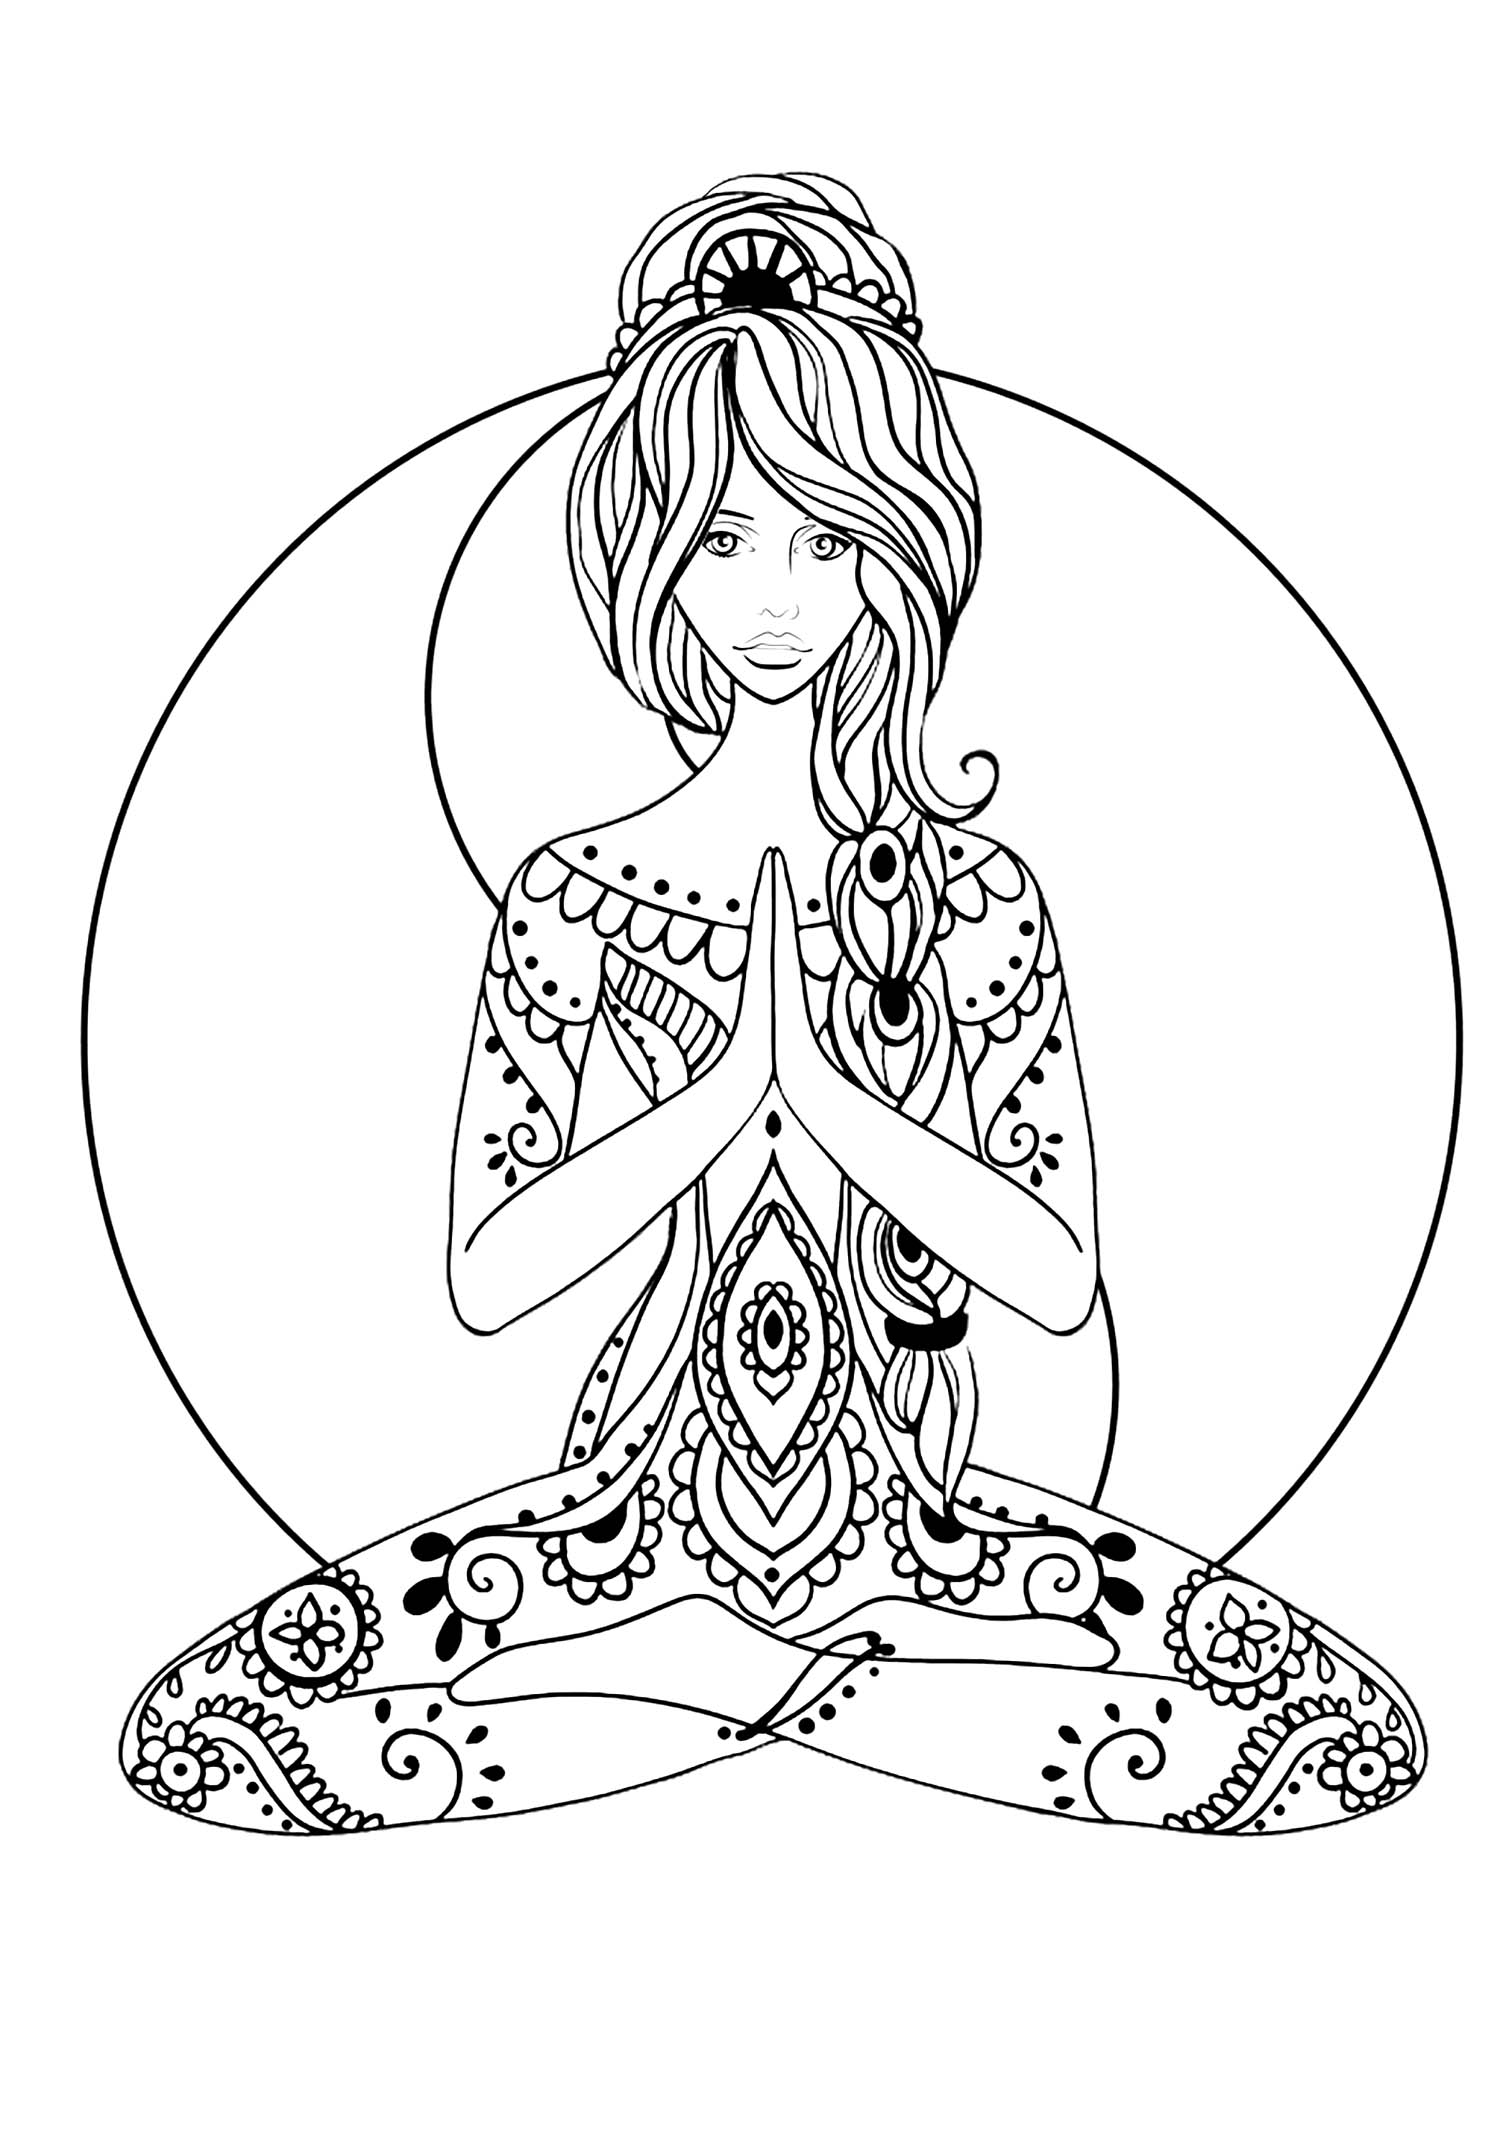 190 Mandalas Para Colorear Para Ninos as well Stock Illustration Sketch Fashion Girl Hand Drawn furthermore 10 Easy Mermaid Coloring Pages For Your Little Ones additionally Flourishing Floral Design moreover . on coloring pages for adults pinterest